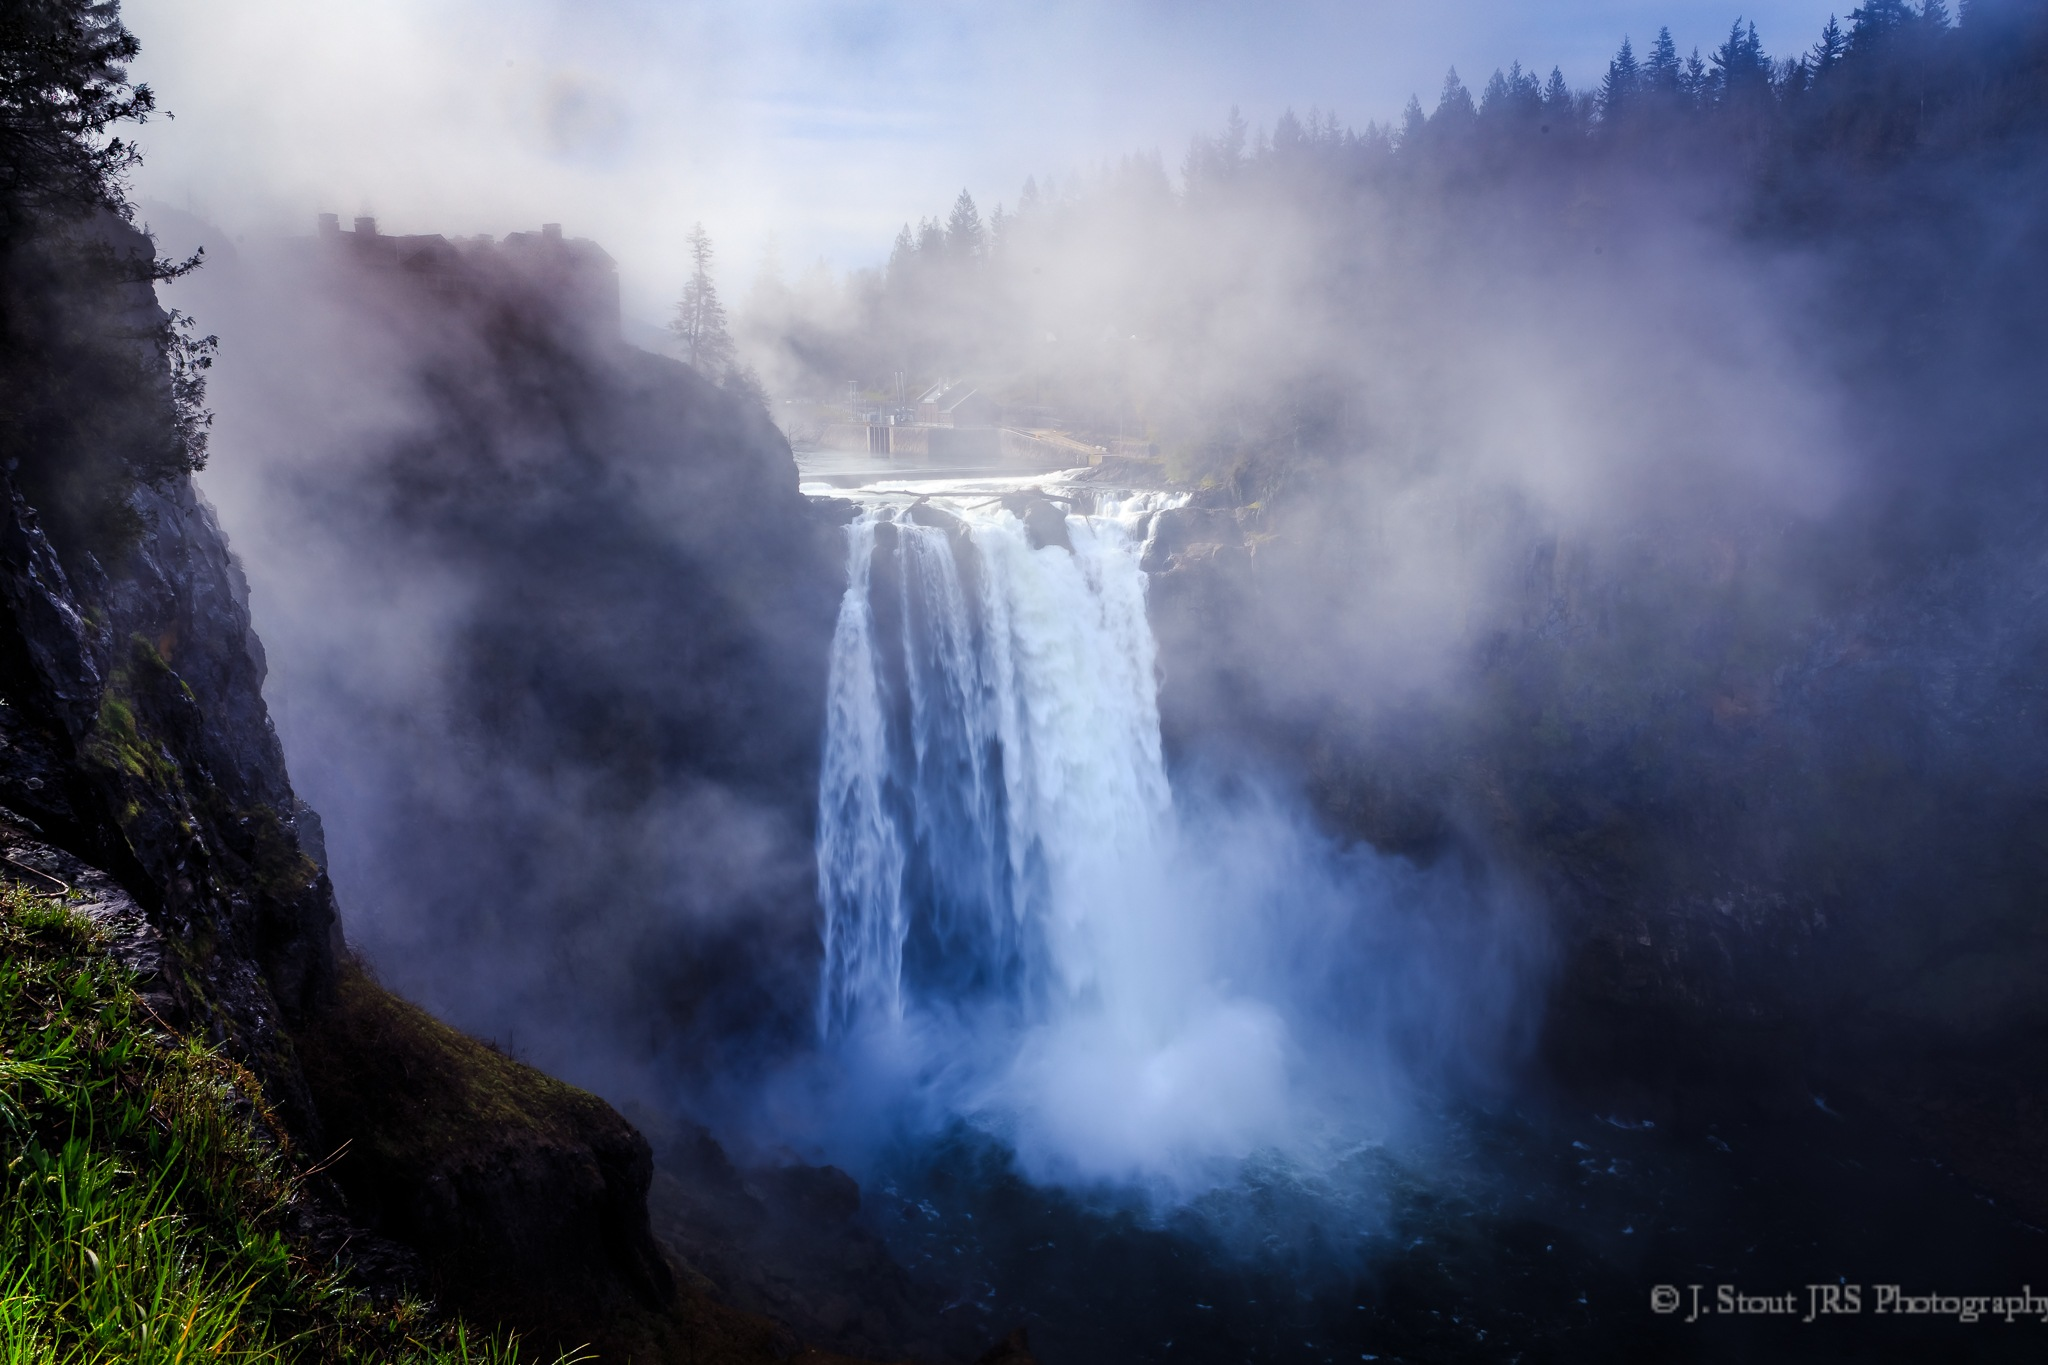 Snoqualmie Falls in Easter Dress by jrstout55